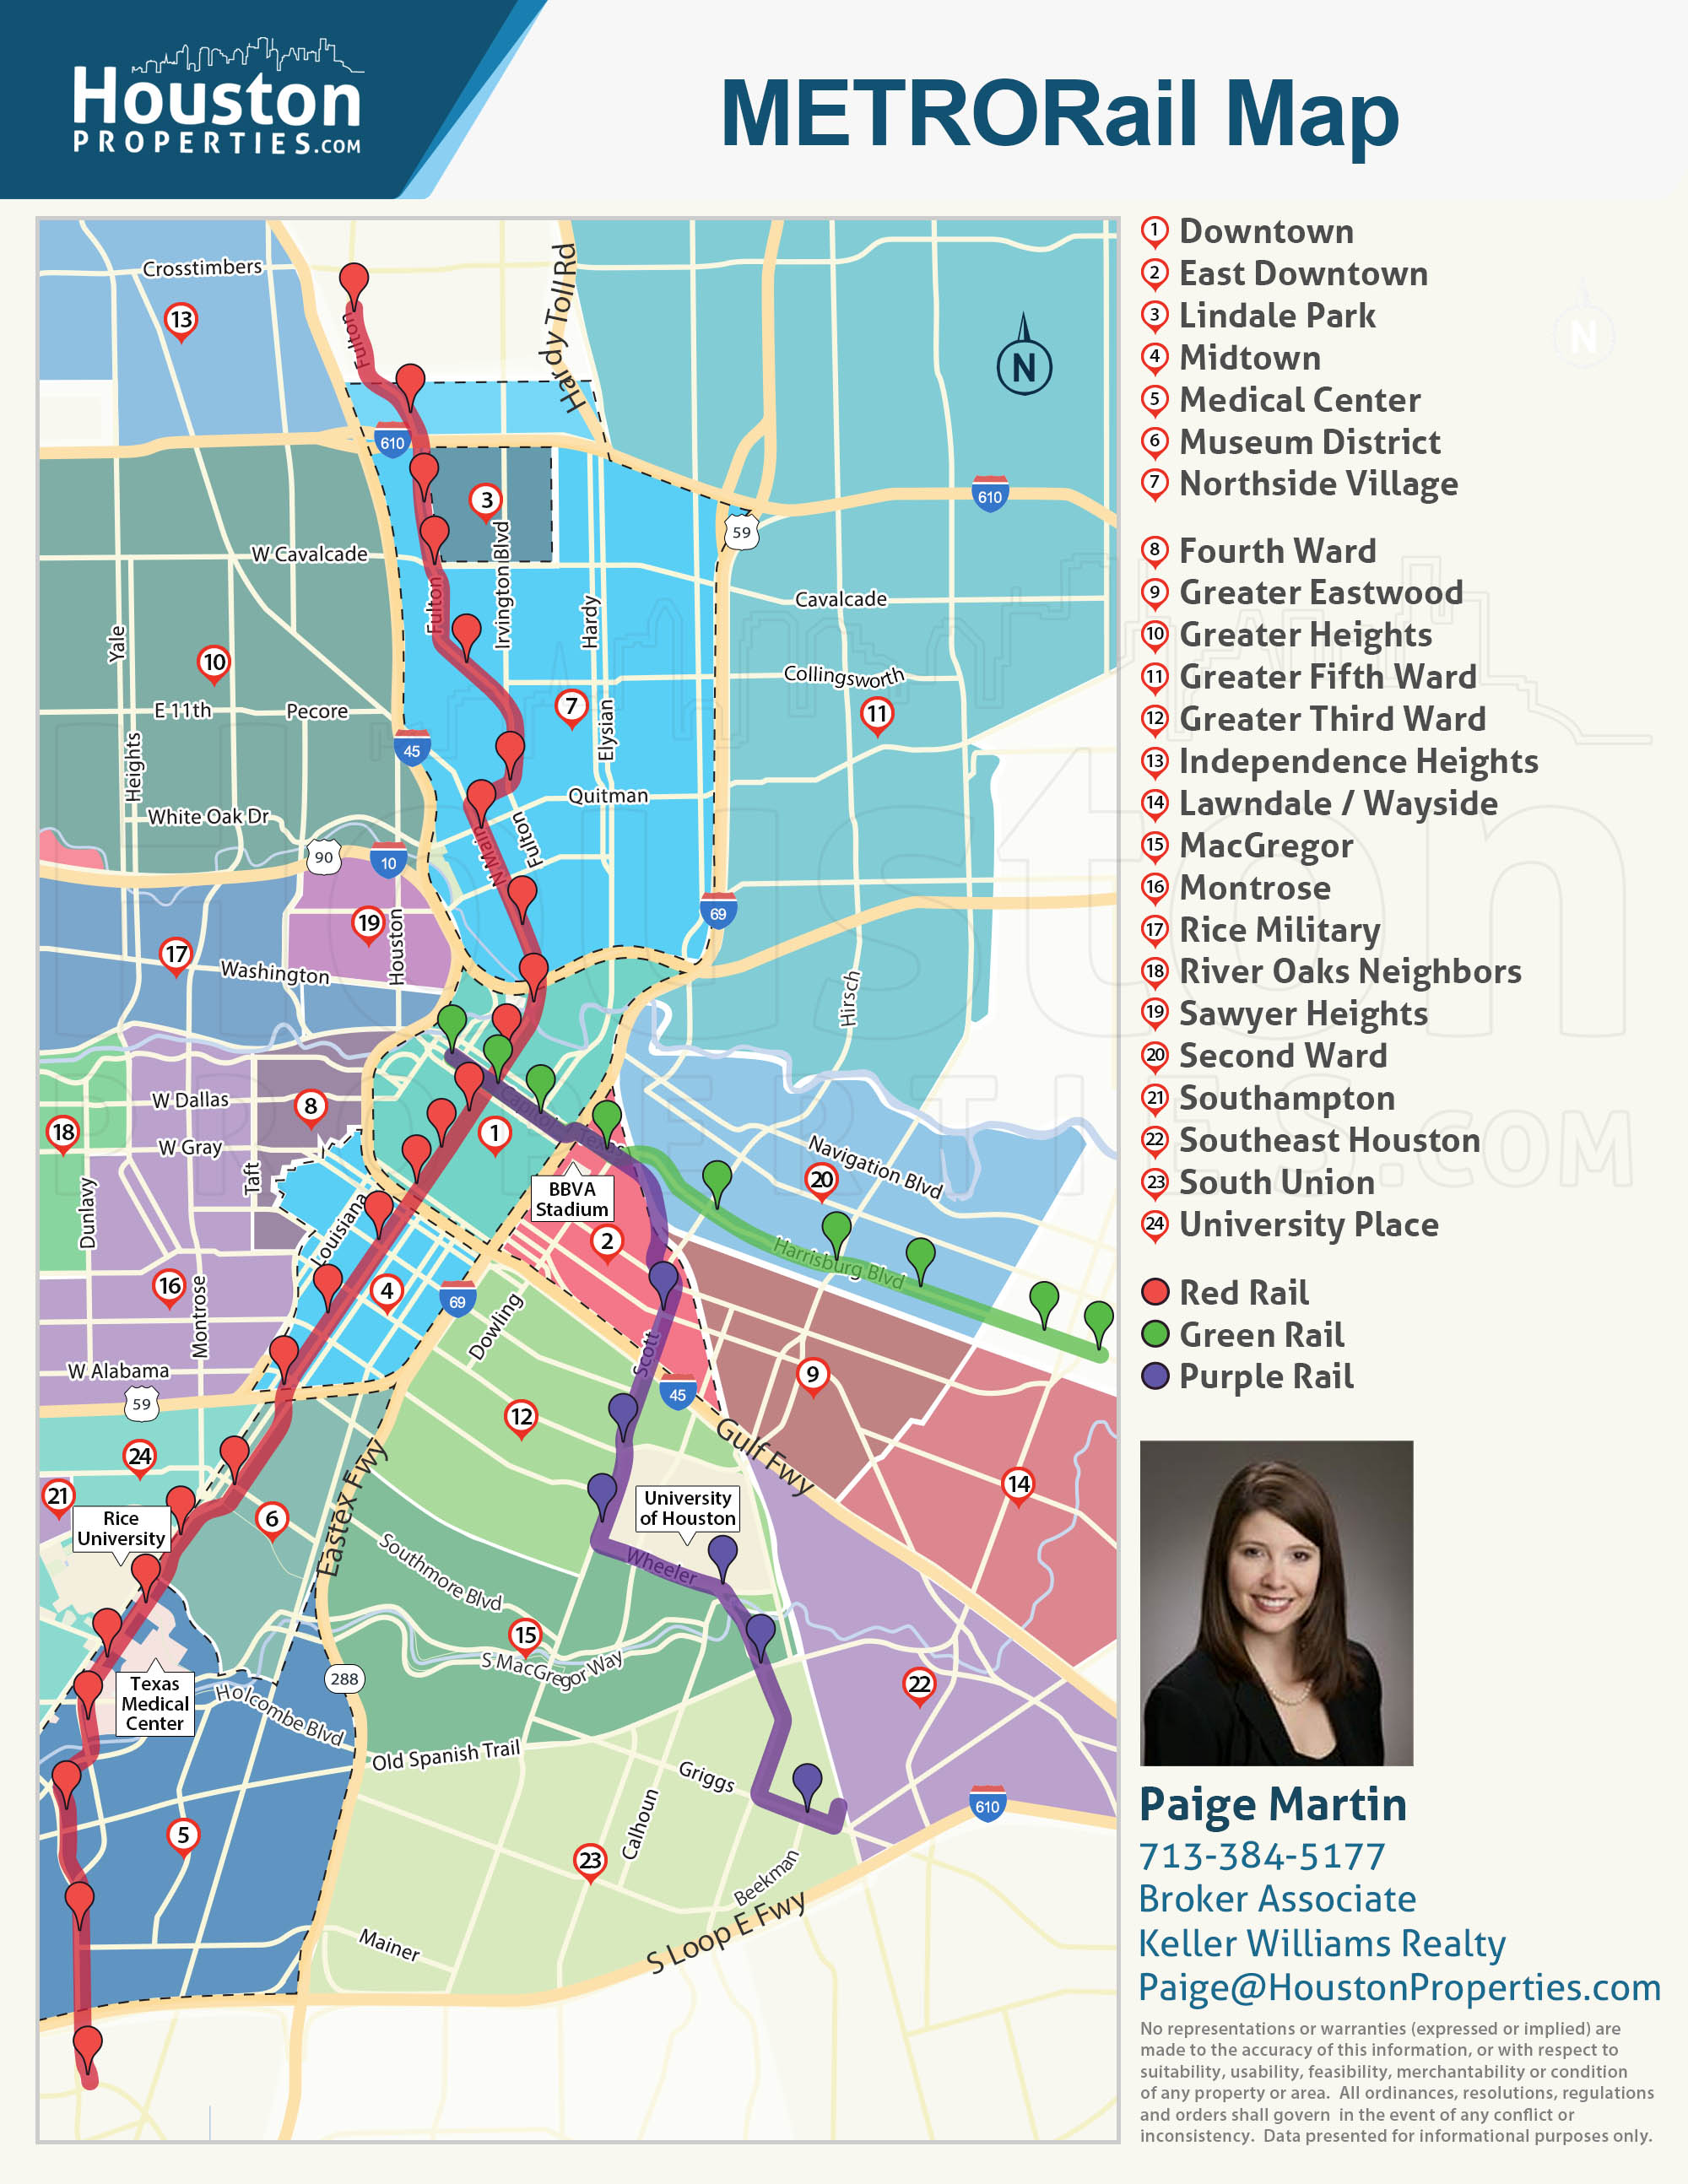 Houston METRORail Map